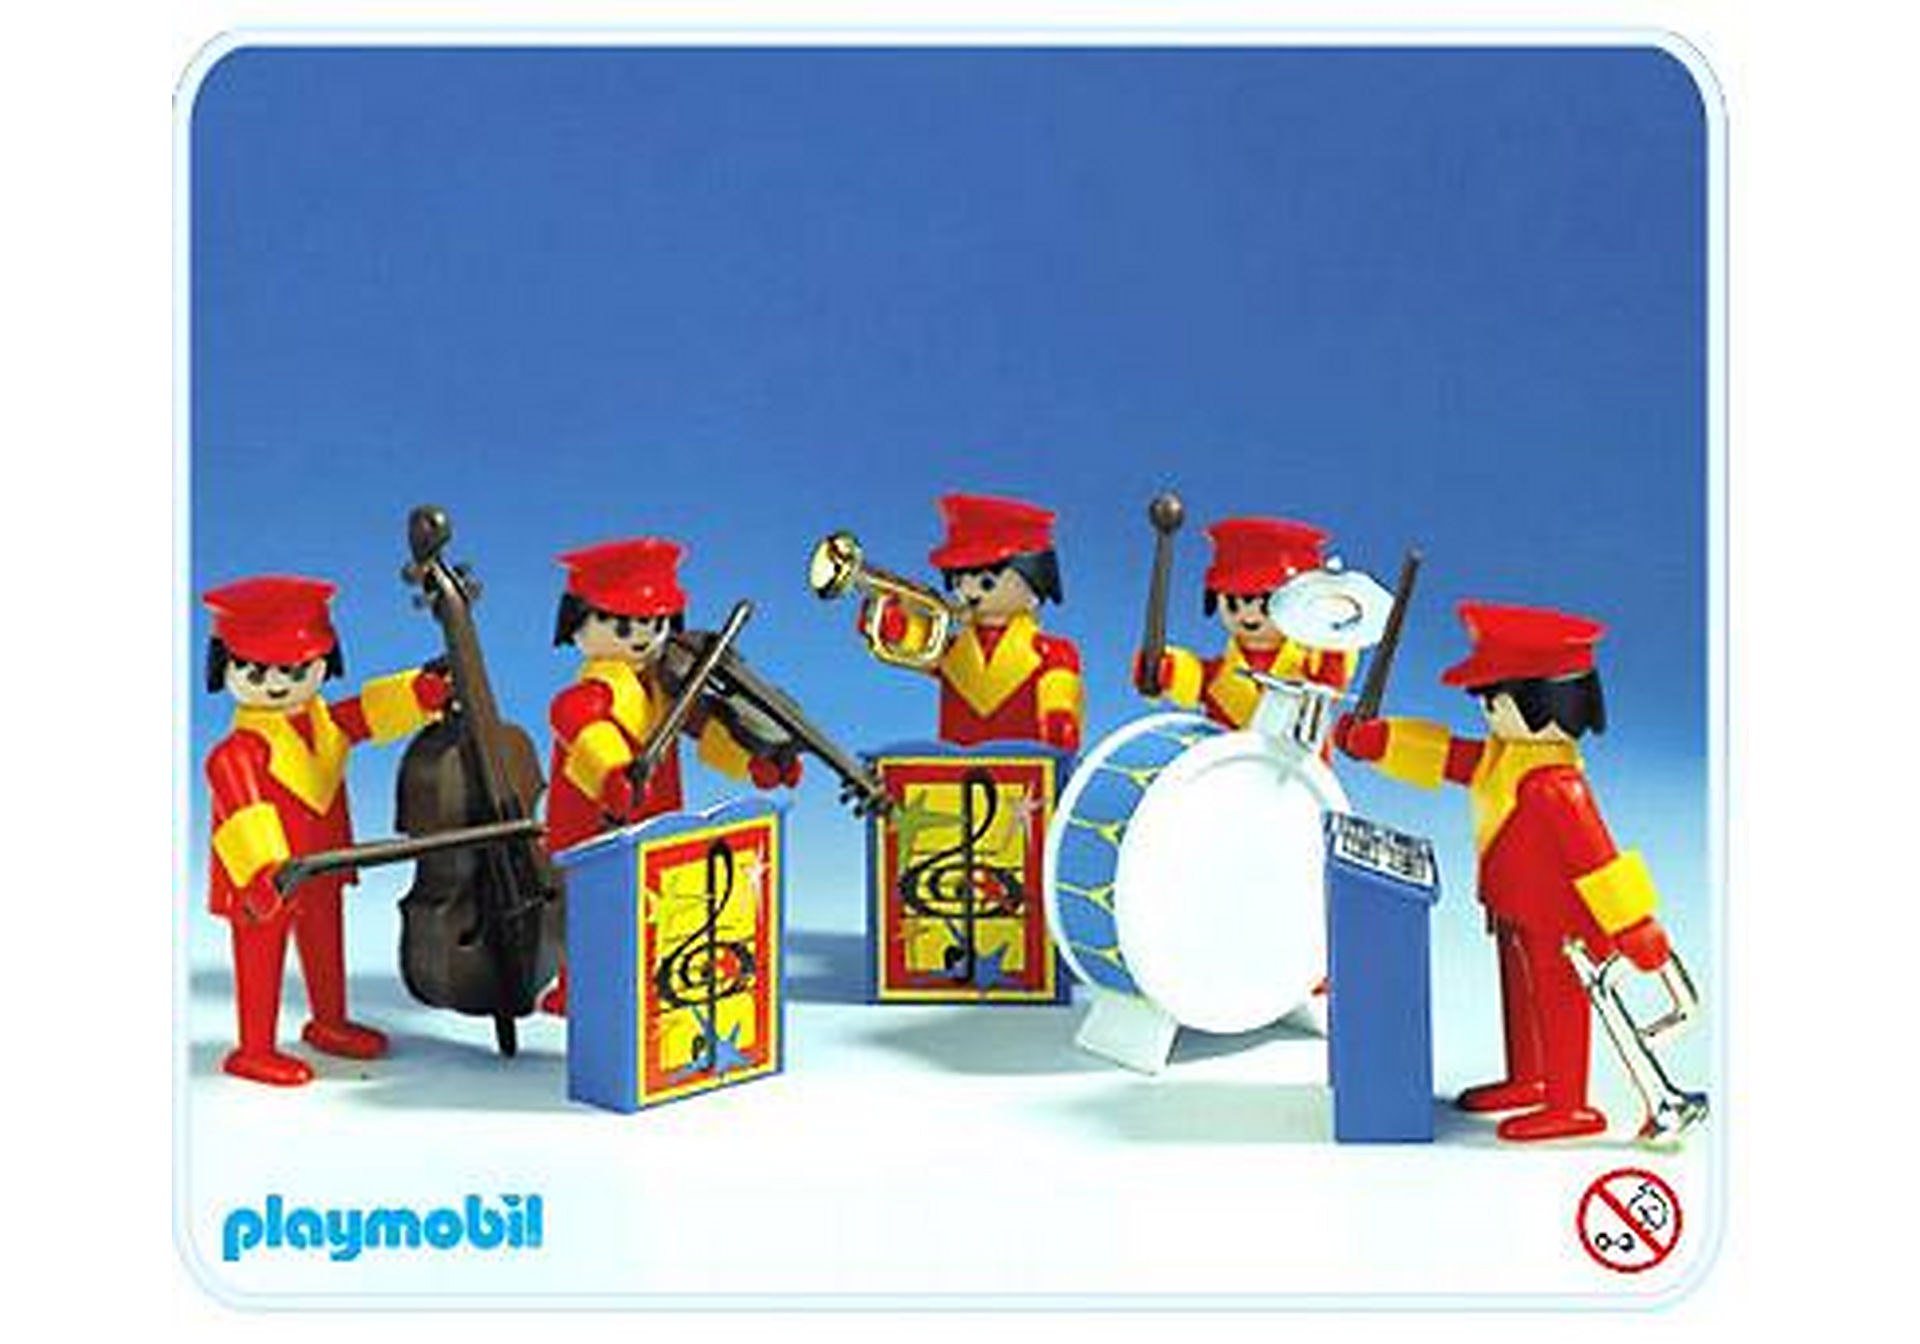 http://media.playmobil.com/i/playmobil/3511-A_product_detail/Musikkapelle